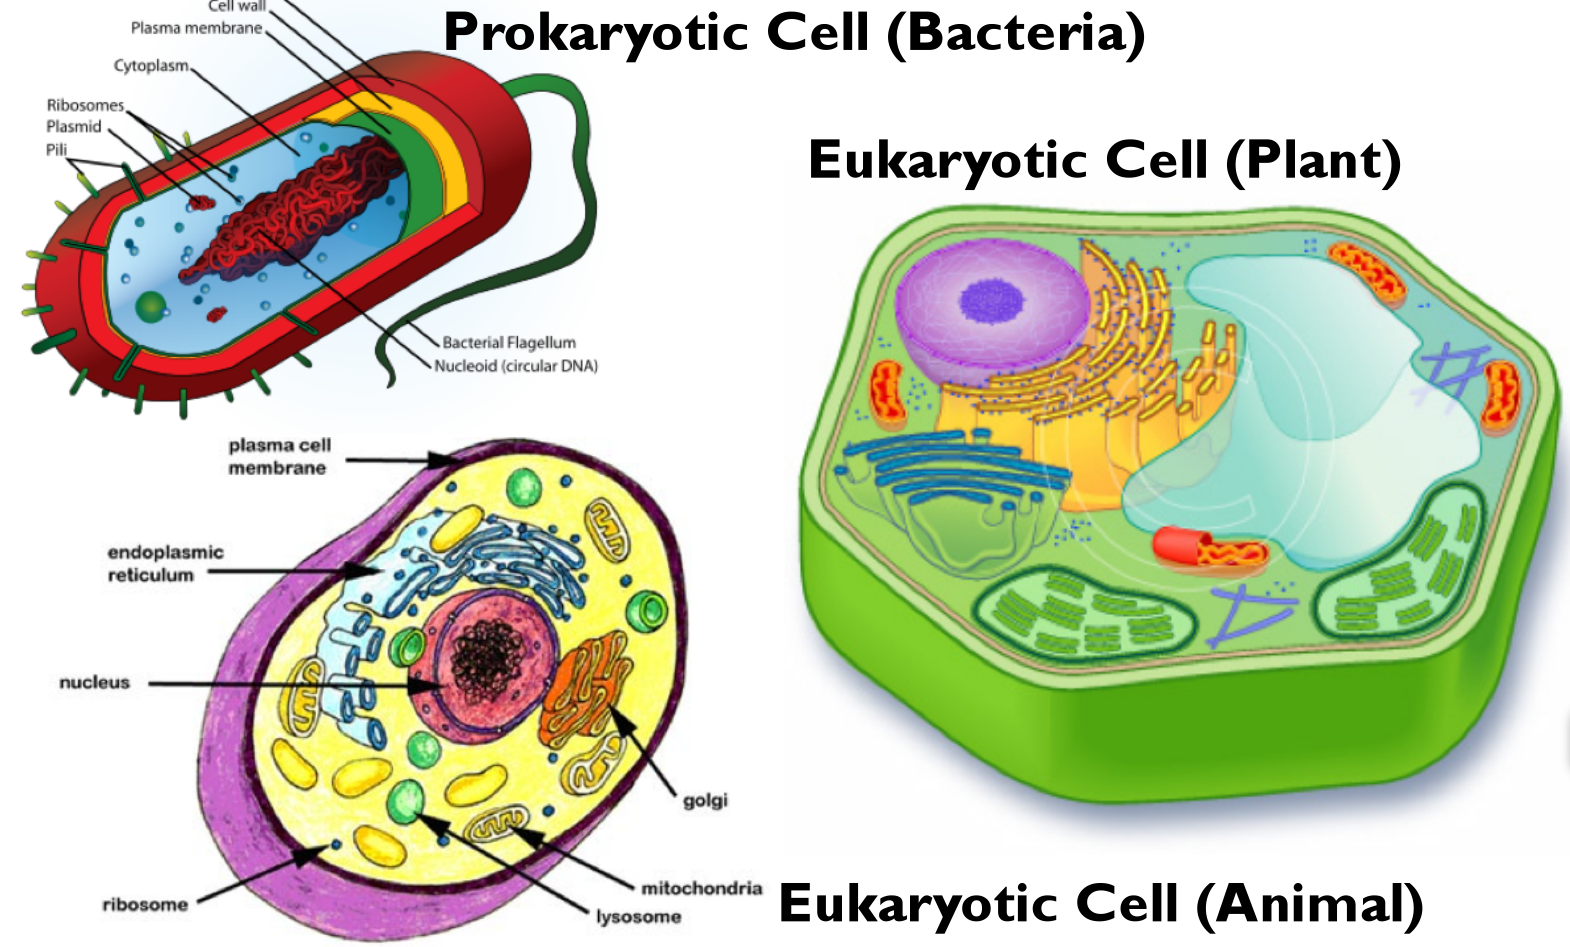 write the differences between prokaryotic an eukaryotic cells and give example for each type of cell